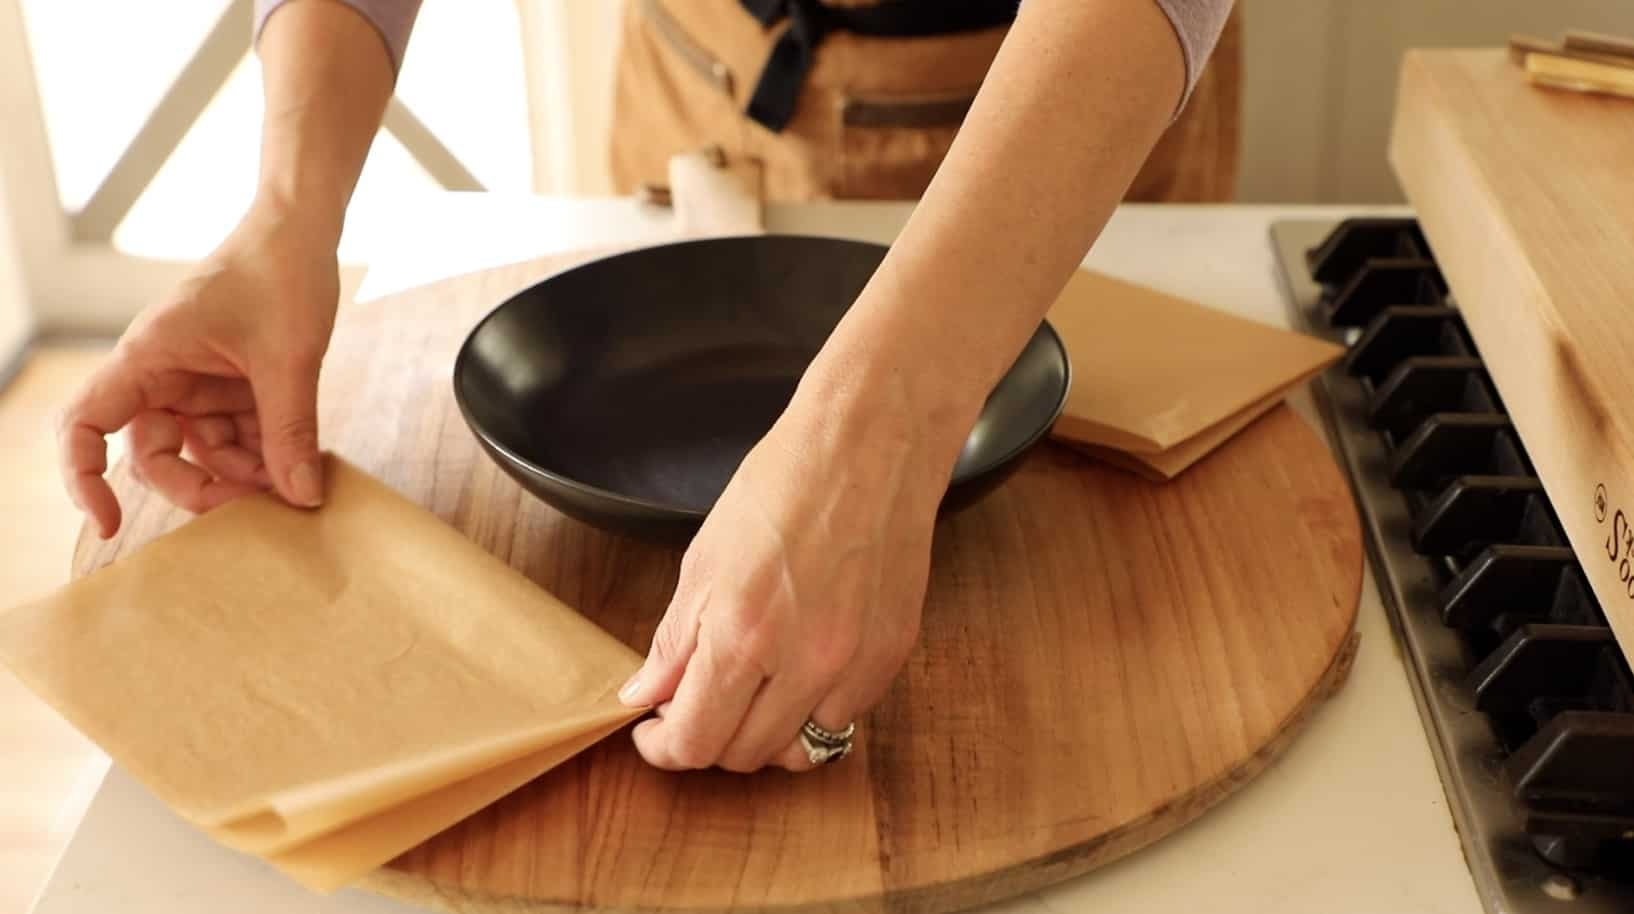 A person placing parchment paper sheets on a board